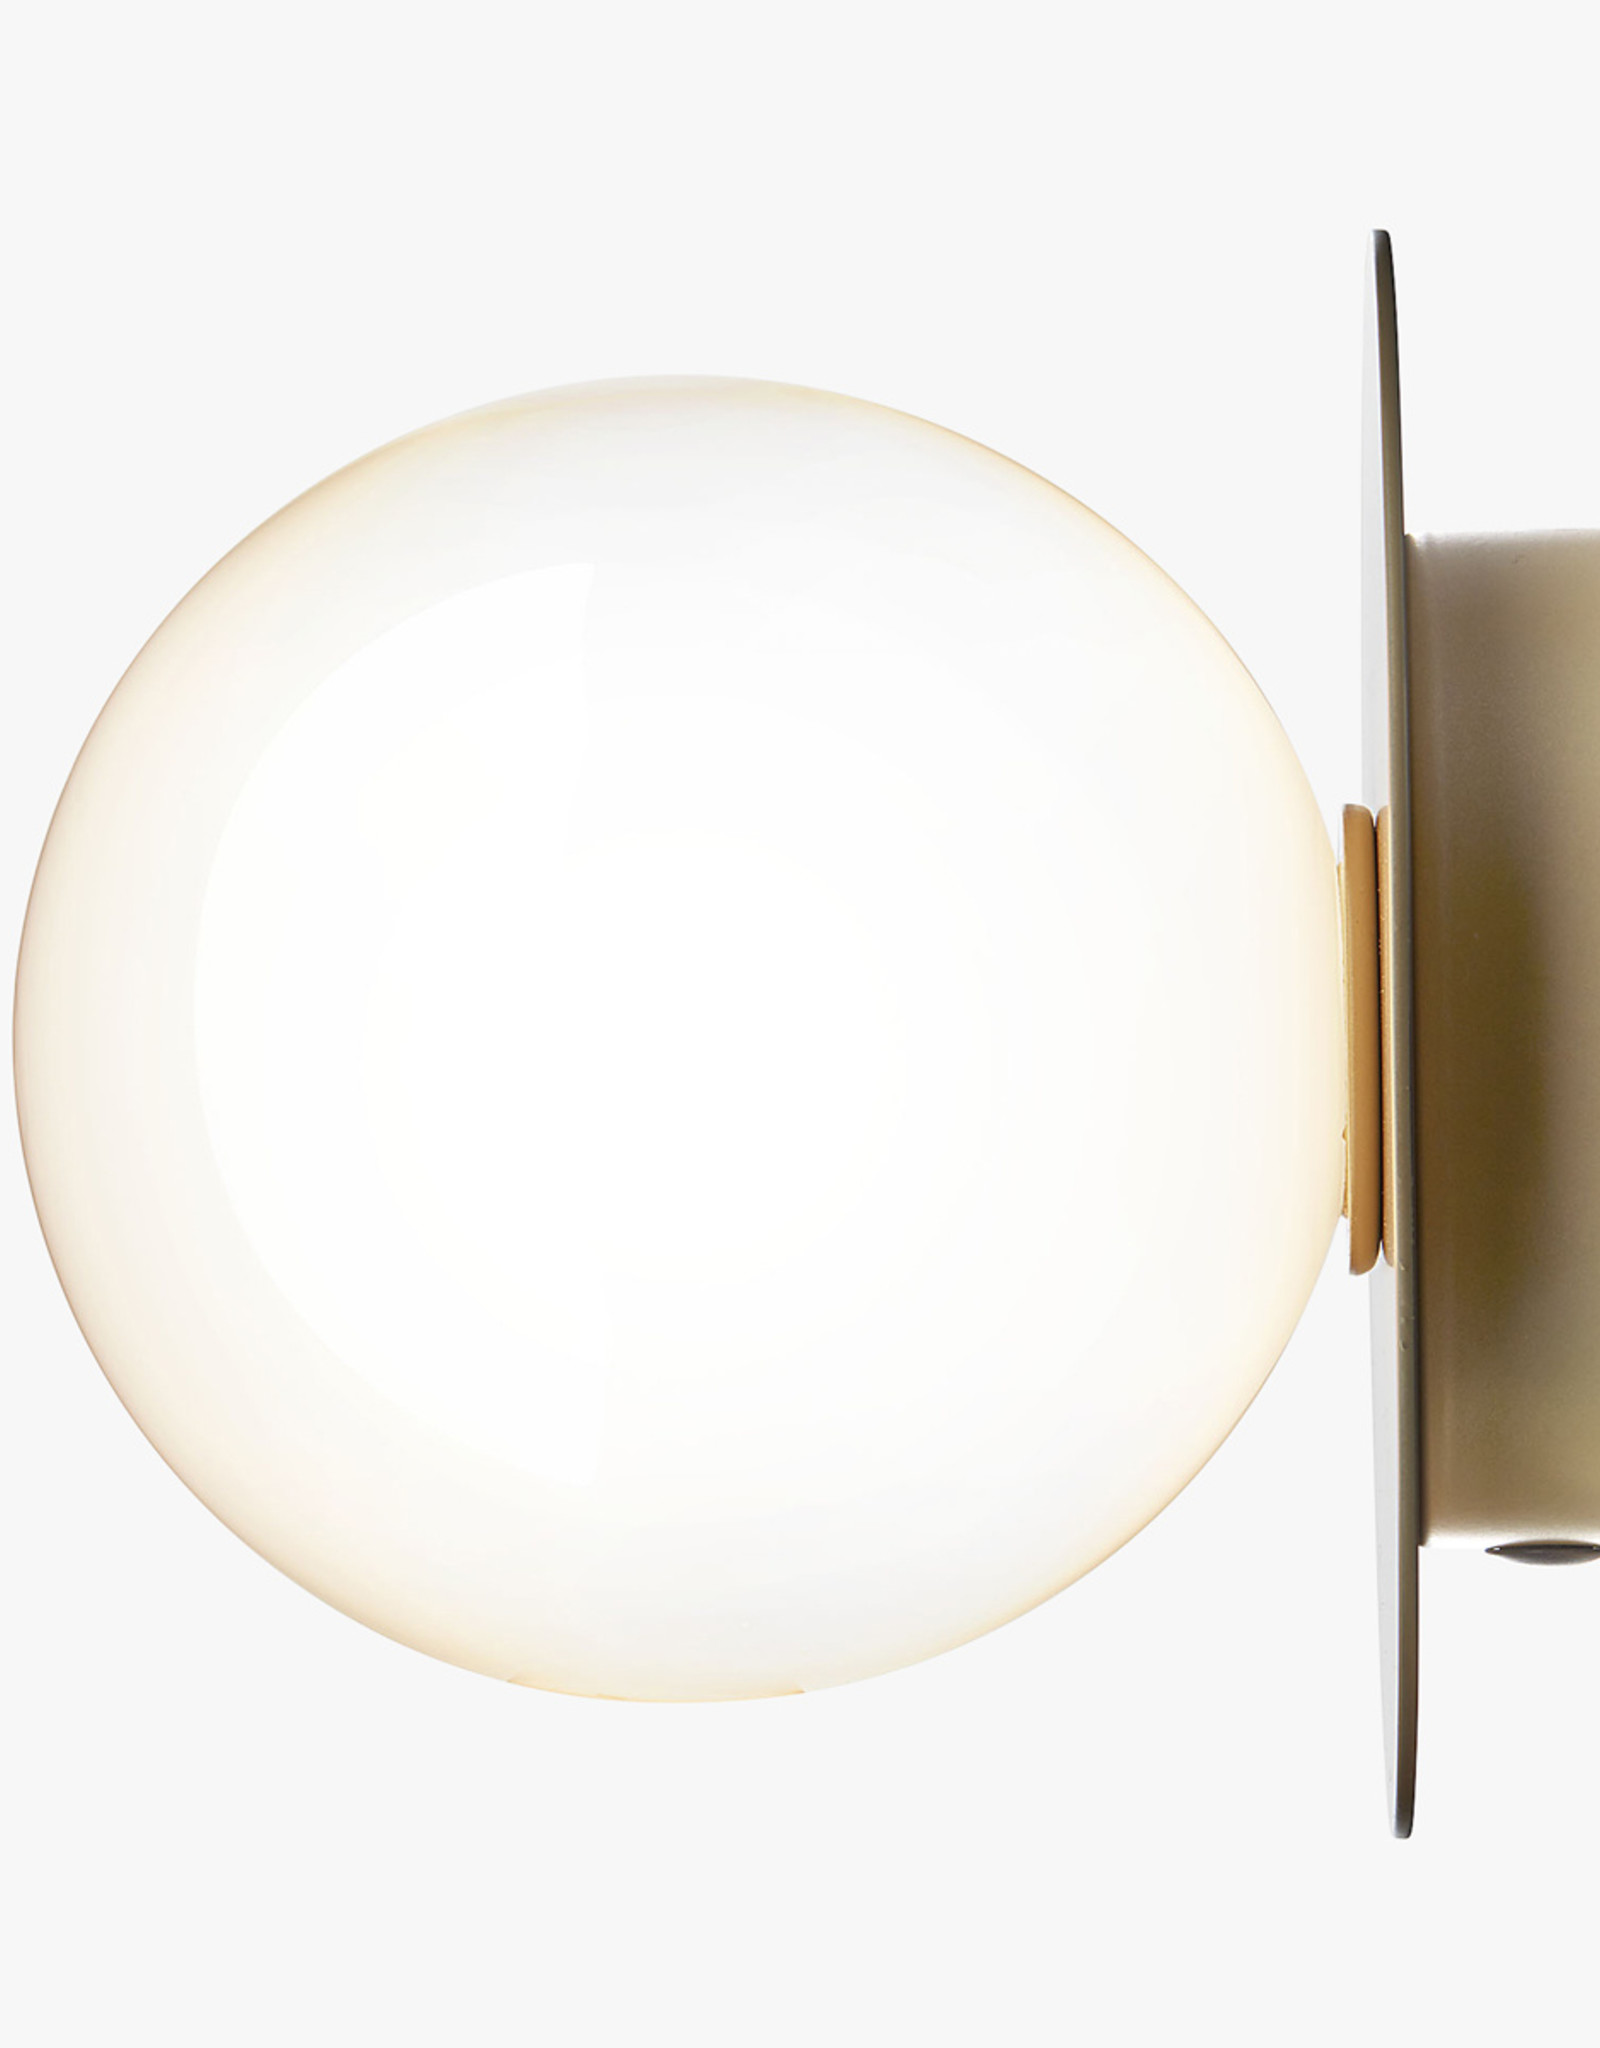 Nuura Liila 1 wall light by Sofie Refer | M | Nordic gold/opal white